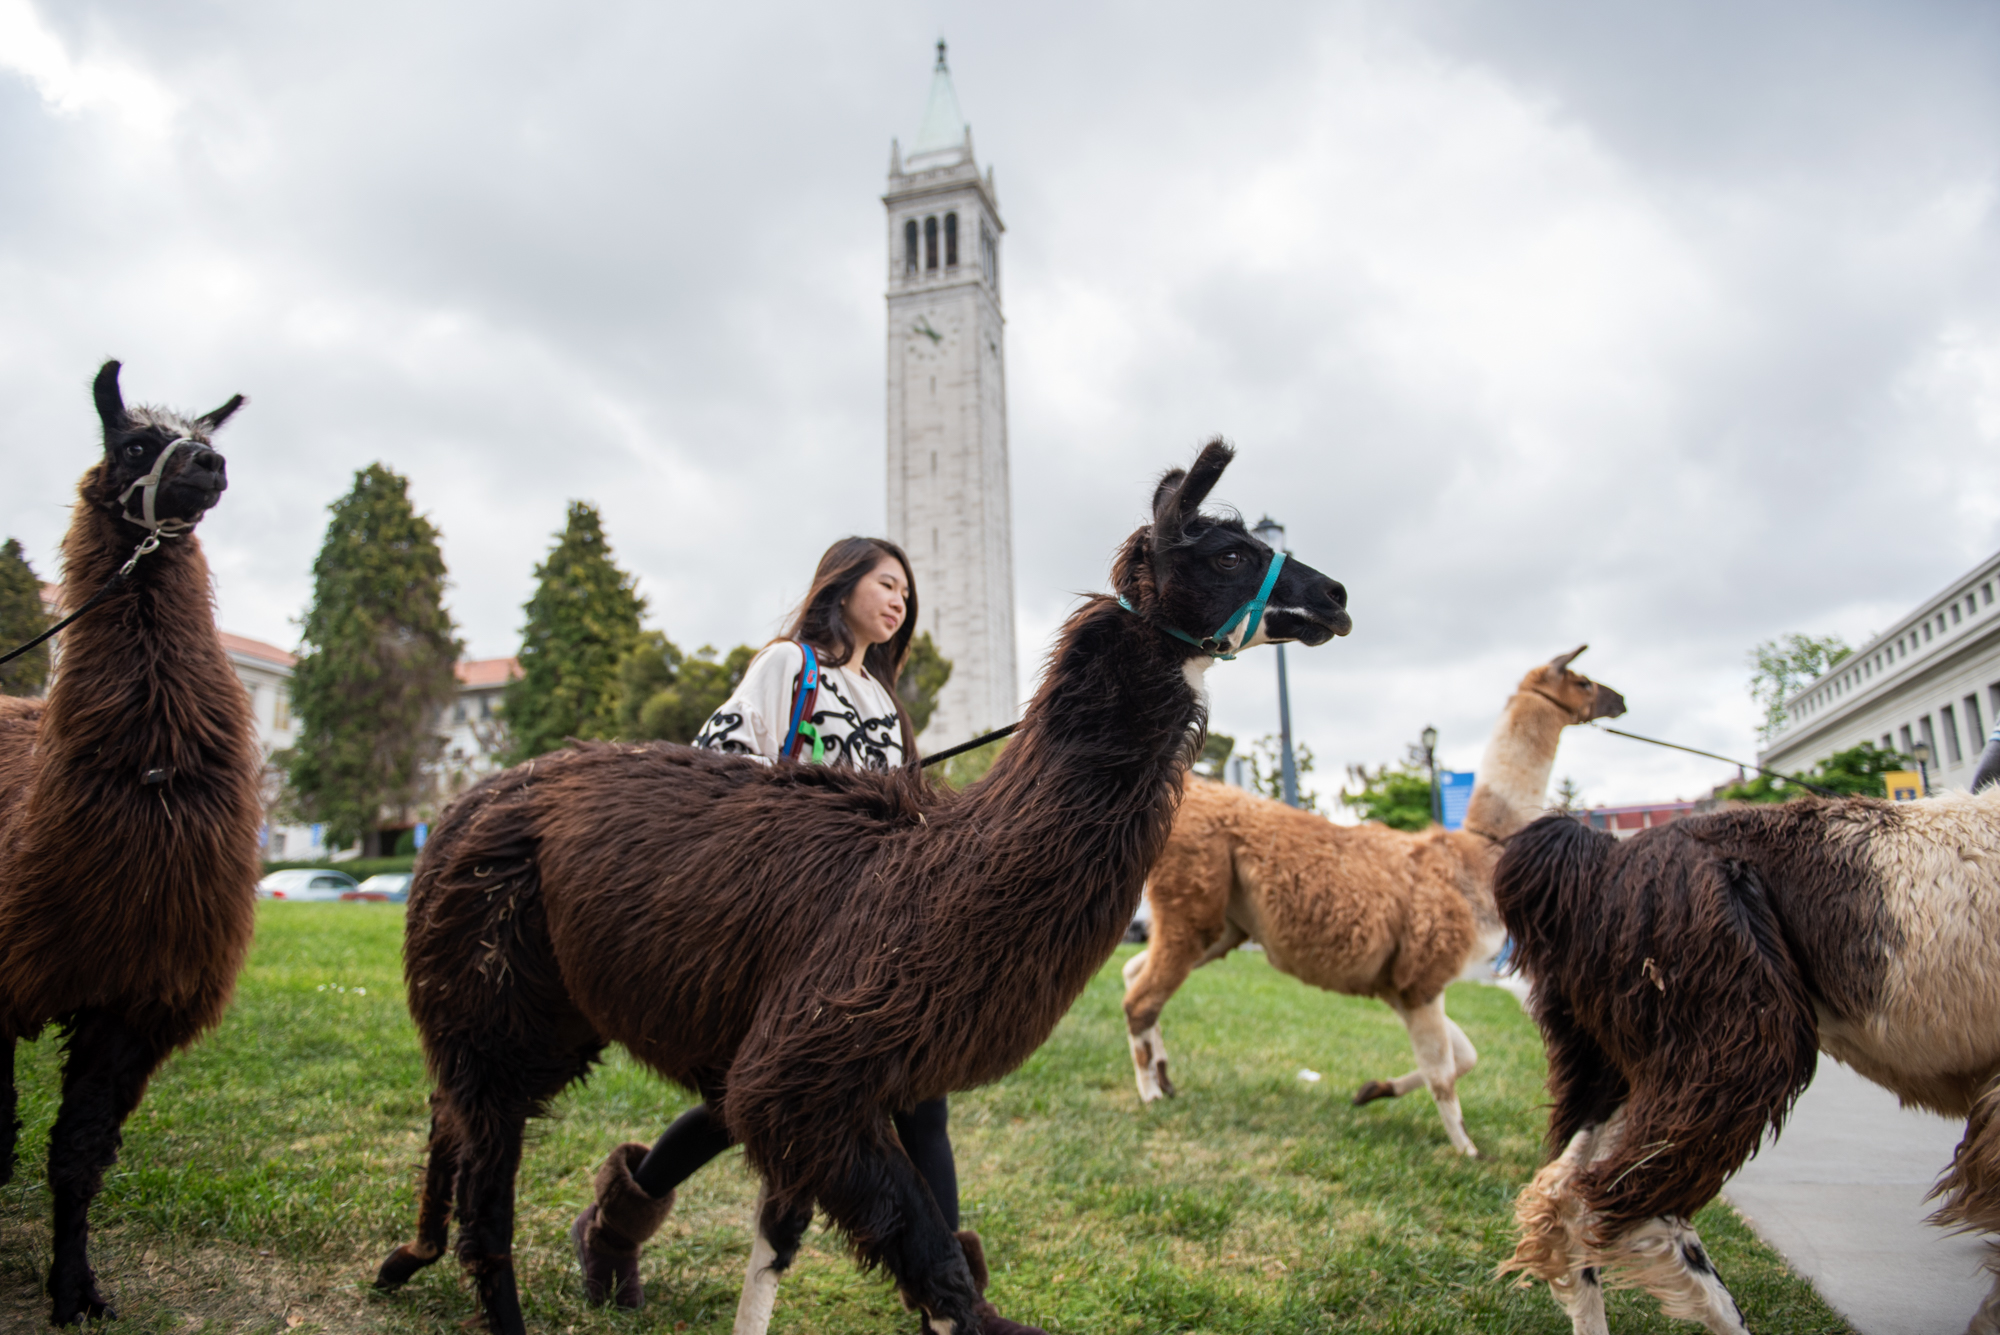 Llamas and their handlers head out near the Campanile at UC Berkeley for Llama-Palooza on Friday, April 27, 2018. | Rosa Furneaux, Special To The Chronicle